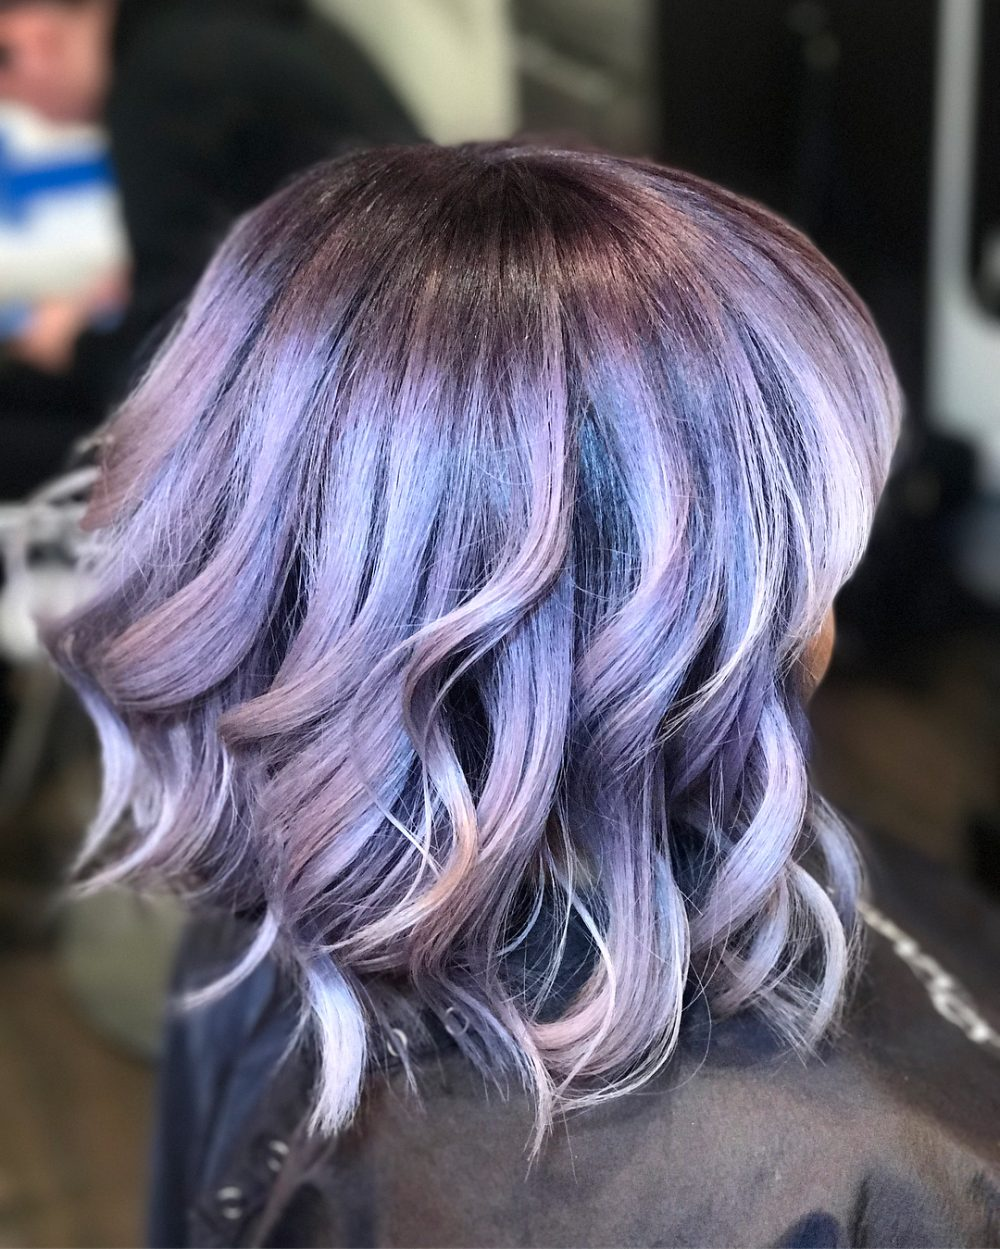 21 Most Creative Hair Color Ideas To Try In 2018